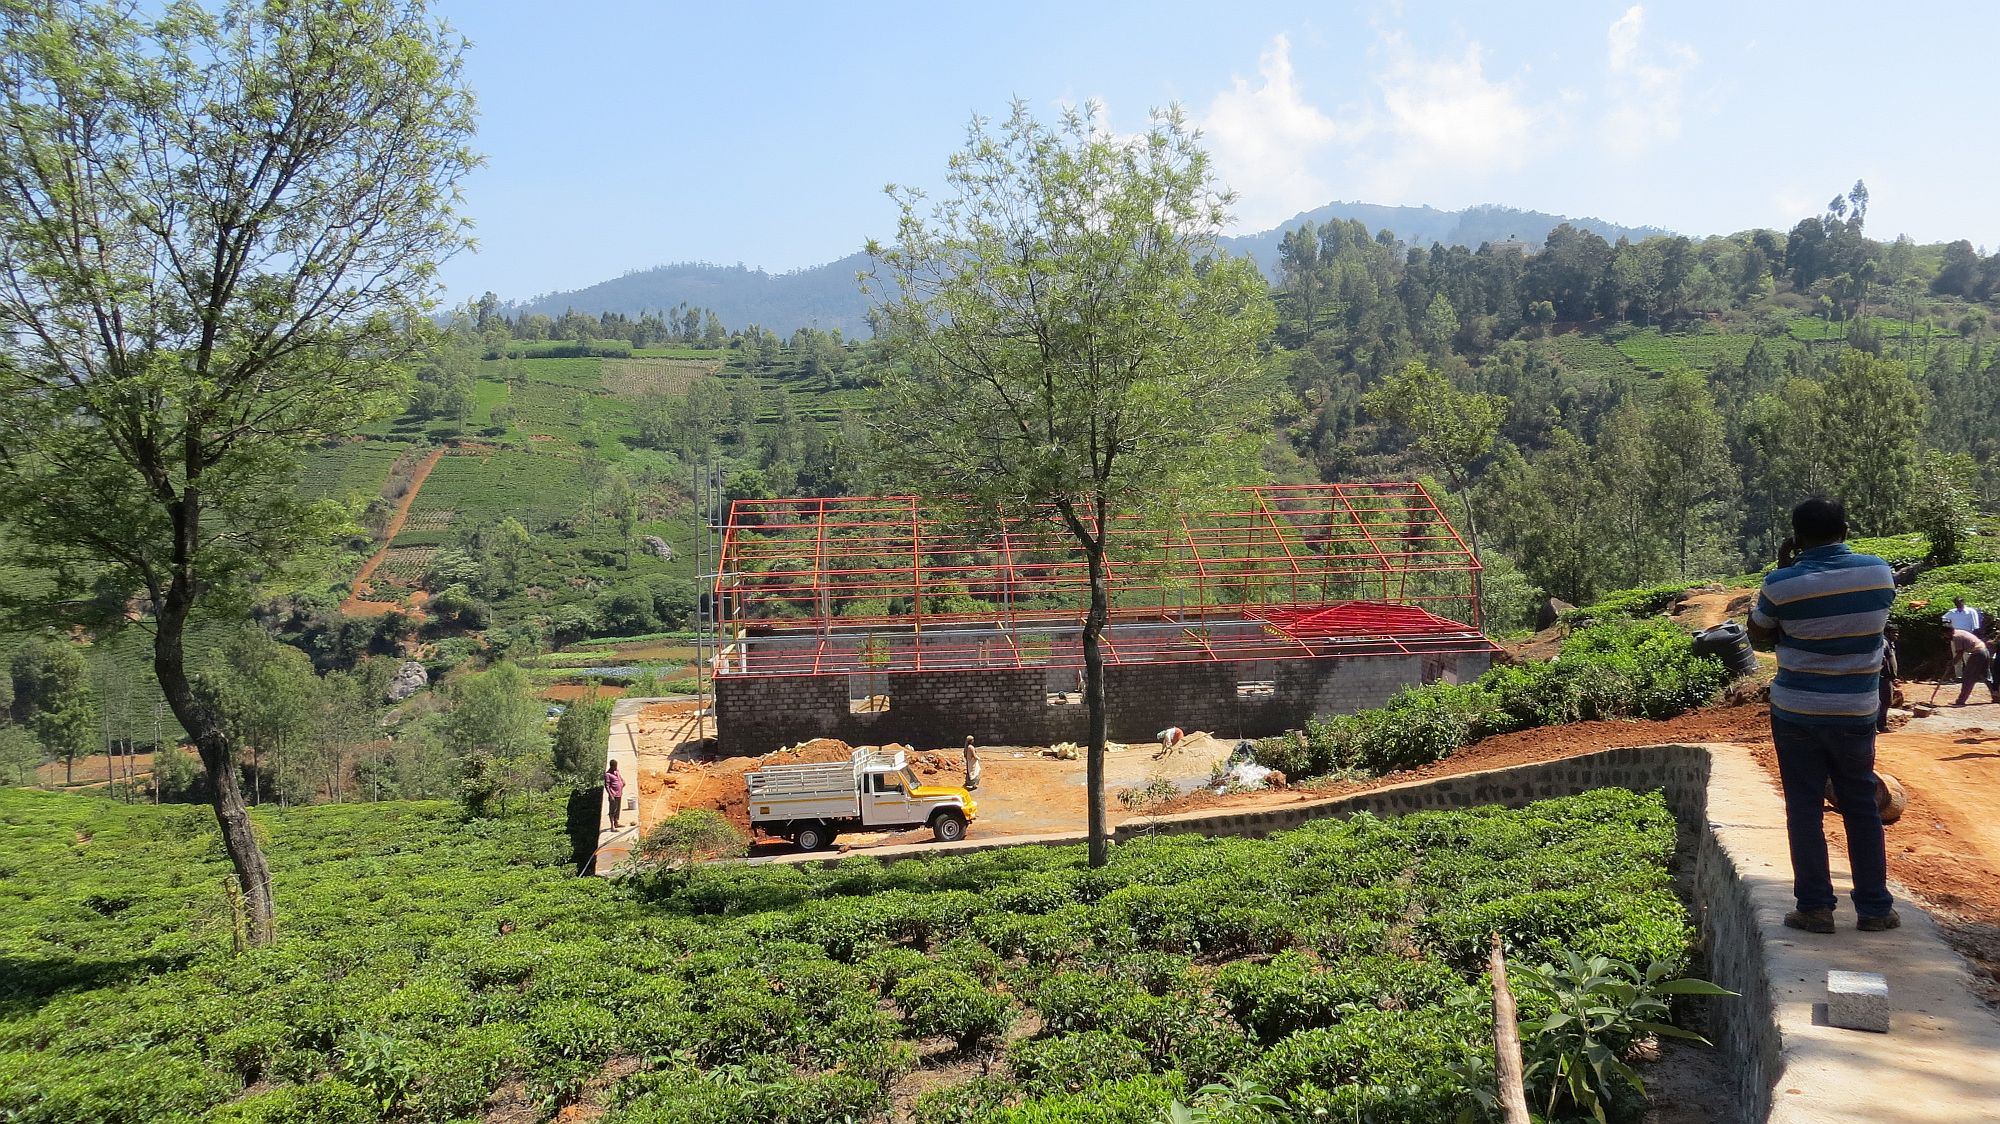 Tea Studio factory in beginning stages of construction in the Nilgiri Mountains- young mountain tea